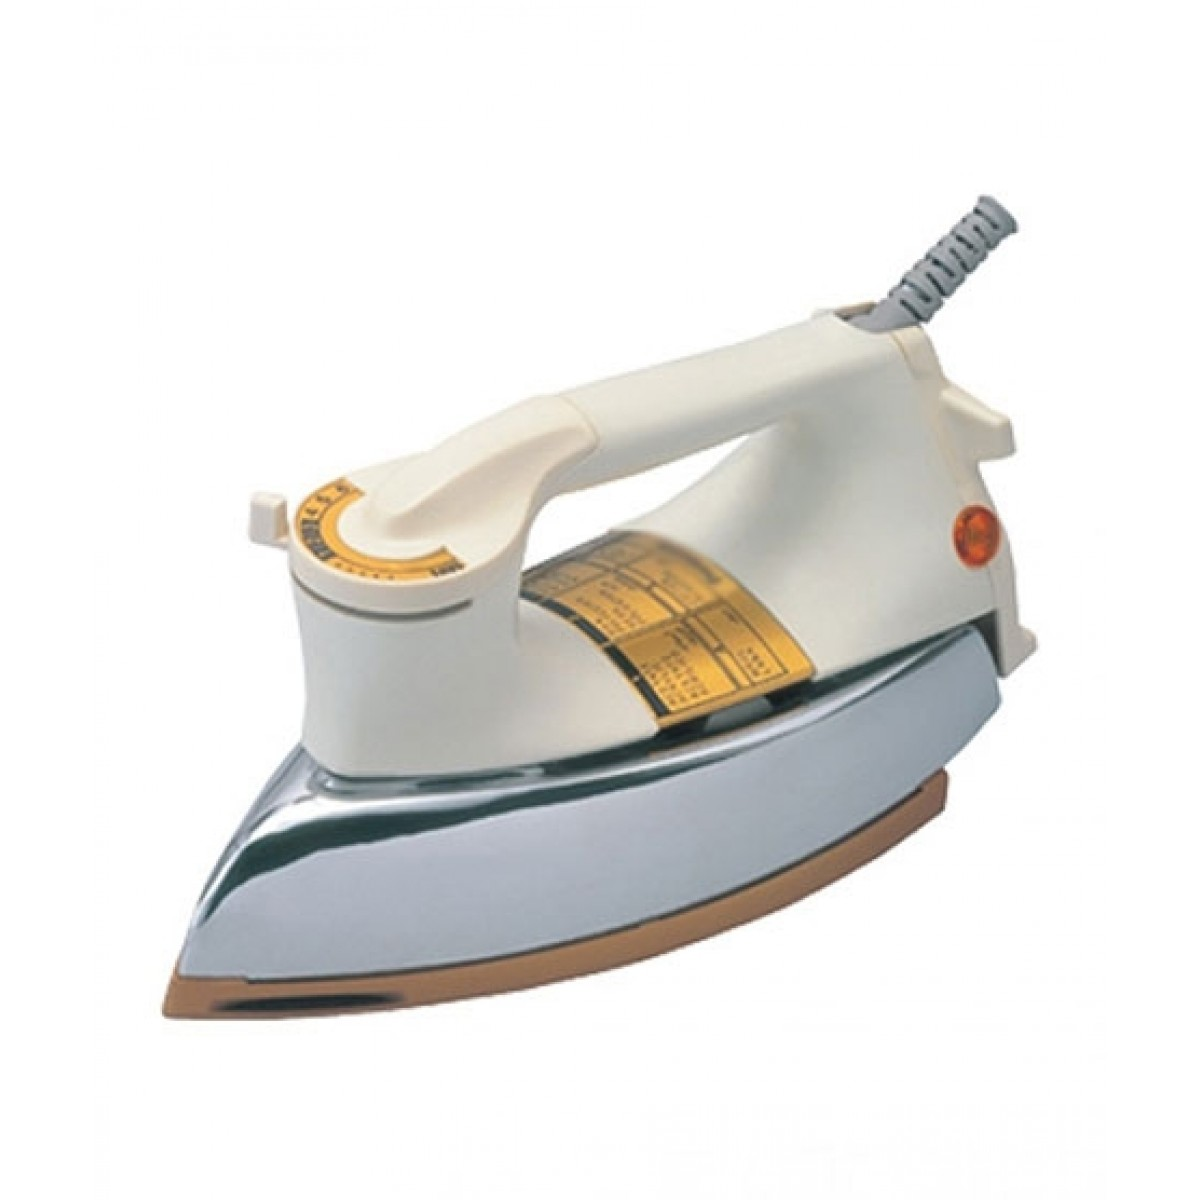 Big Show Deluxe Automatic Dry Iron (NI-22AWTXJ)